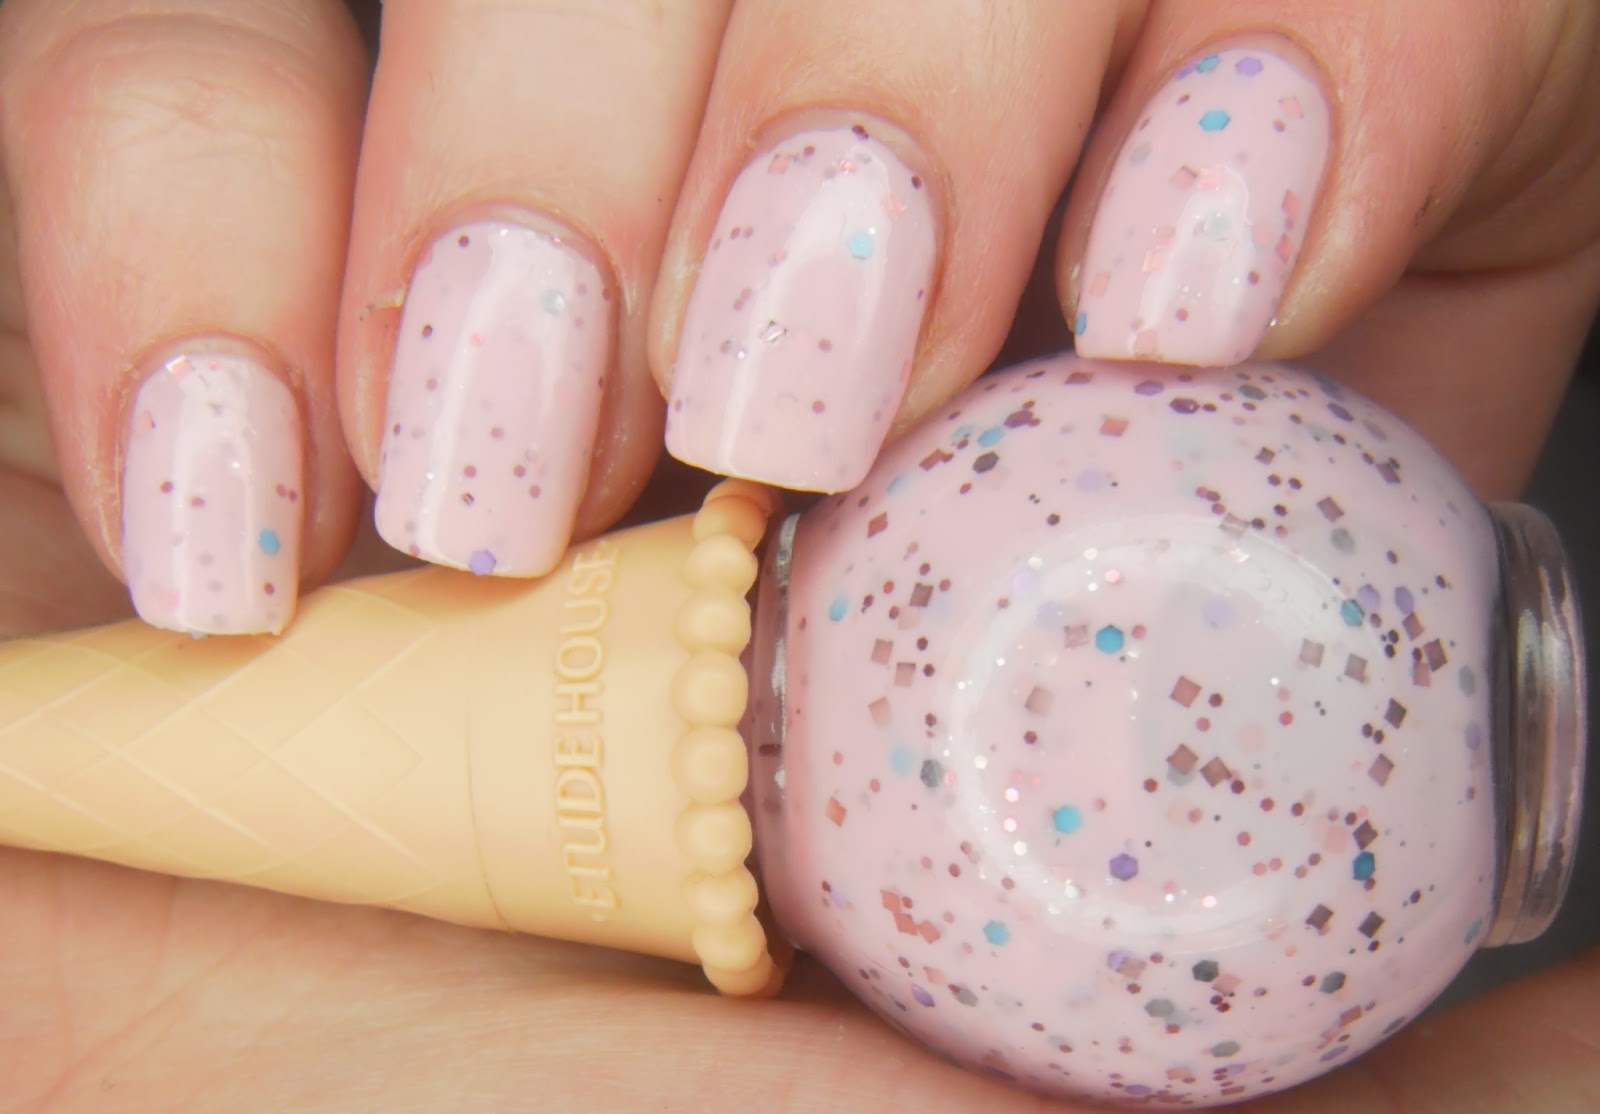 Specialgirl Nails Girly Girl Nail Art Challenge Week 2 Gimme That